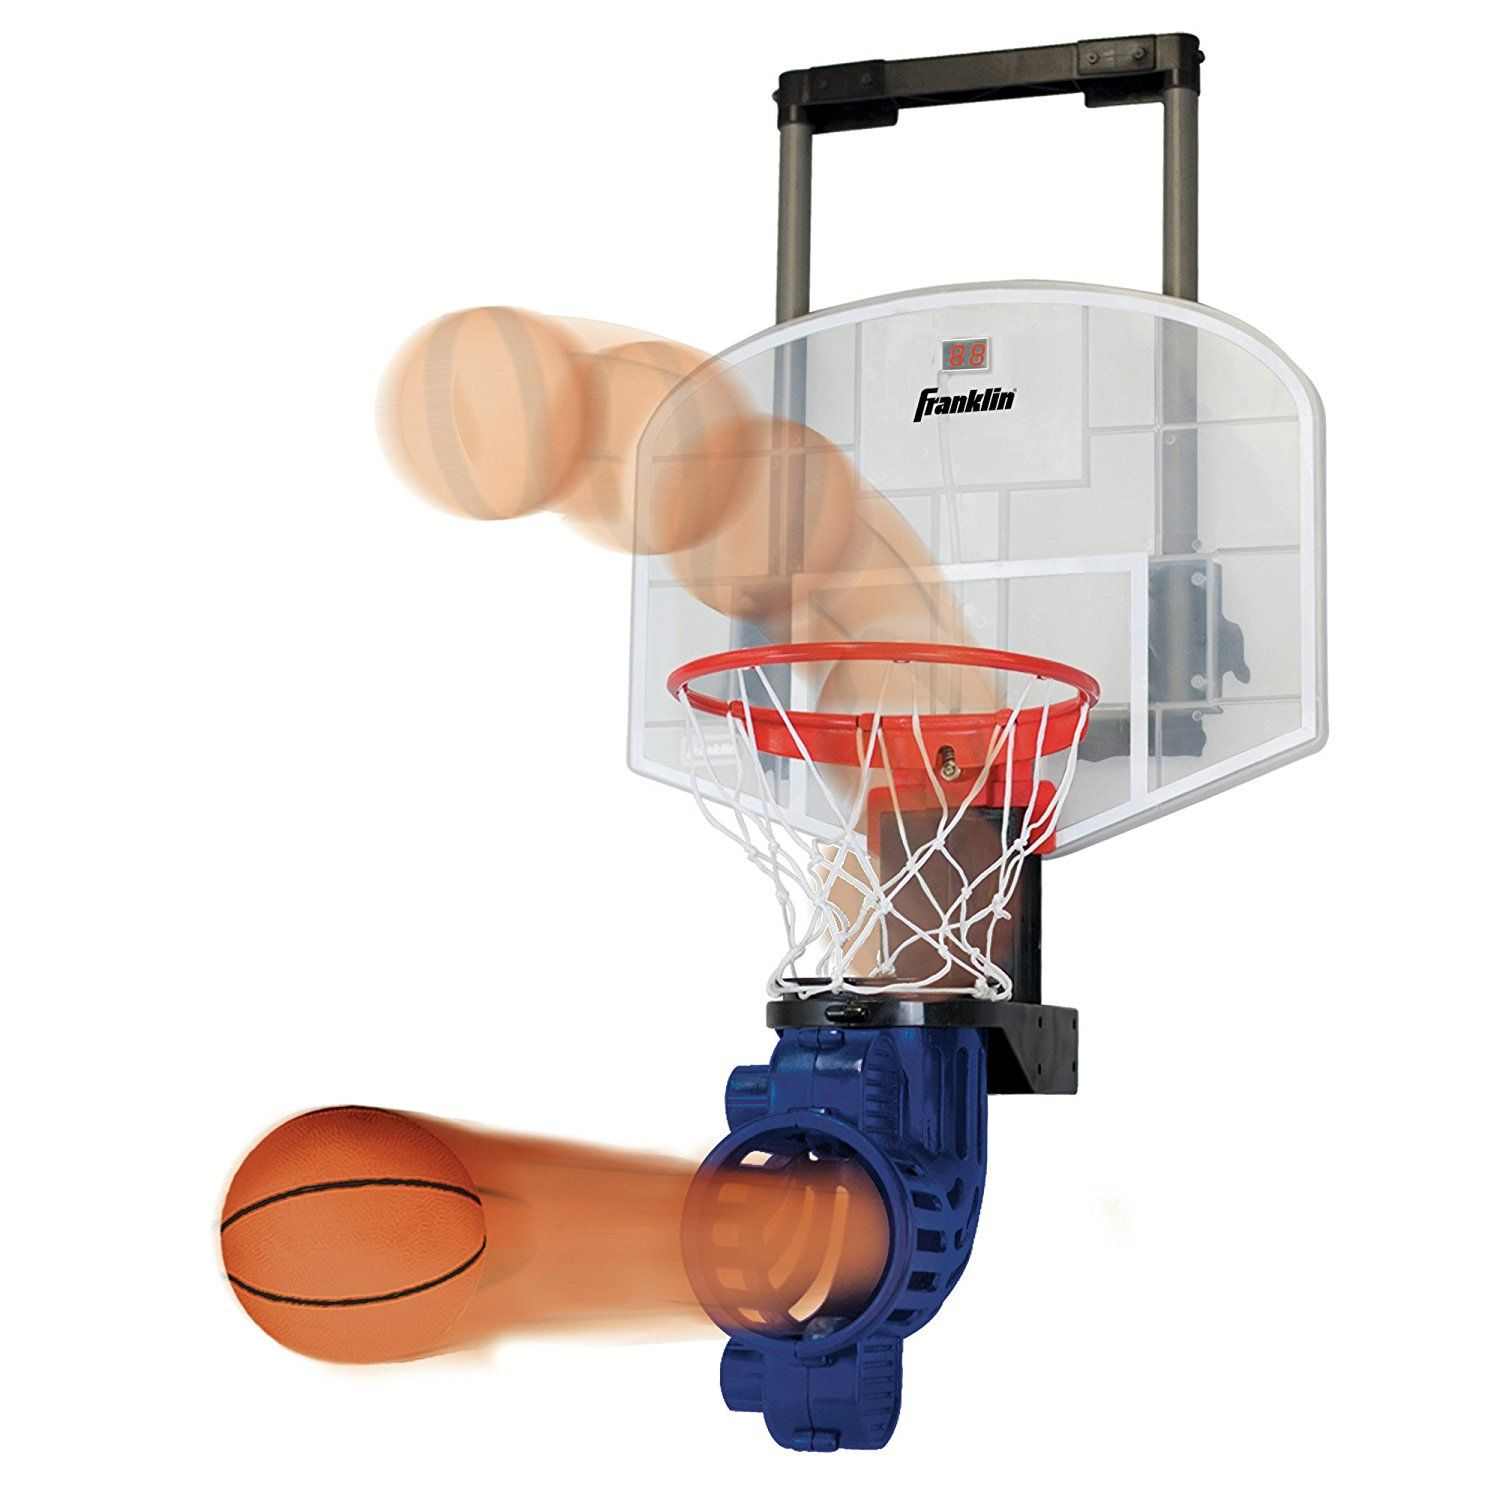 Amazon.com : Franklin Sports Shoot Again Basketball : Toy Basketball Products : Sports & Outdoors